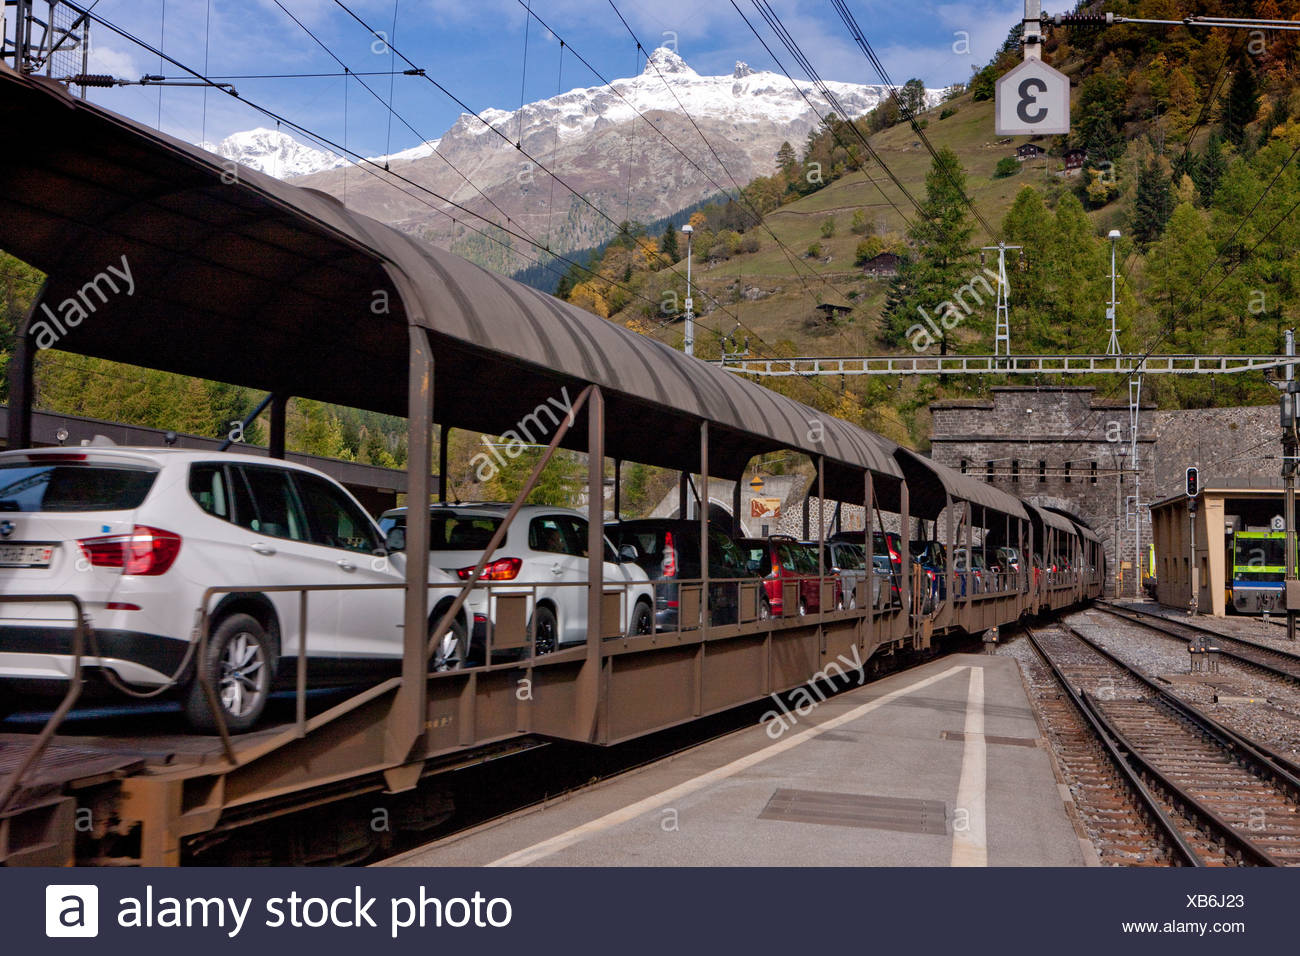 Tunnel, entrance, Goppenstein, VERSUS, road, railway, train, railroad, autumn, Lötschberg, canton, Valais, BLS, Switzerland, Eur - Stock Image